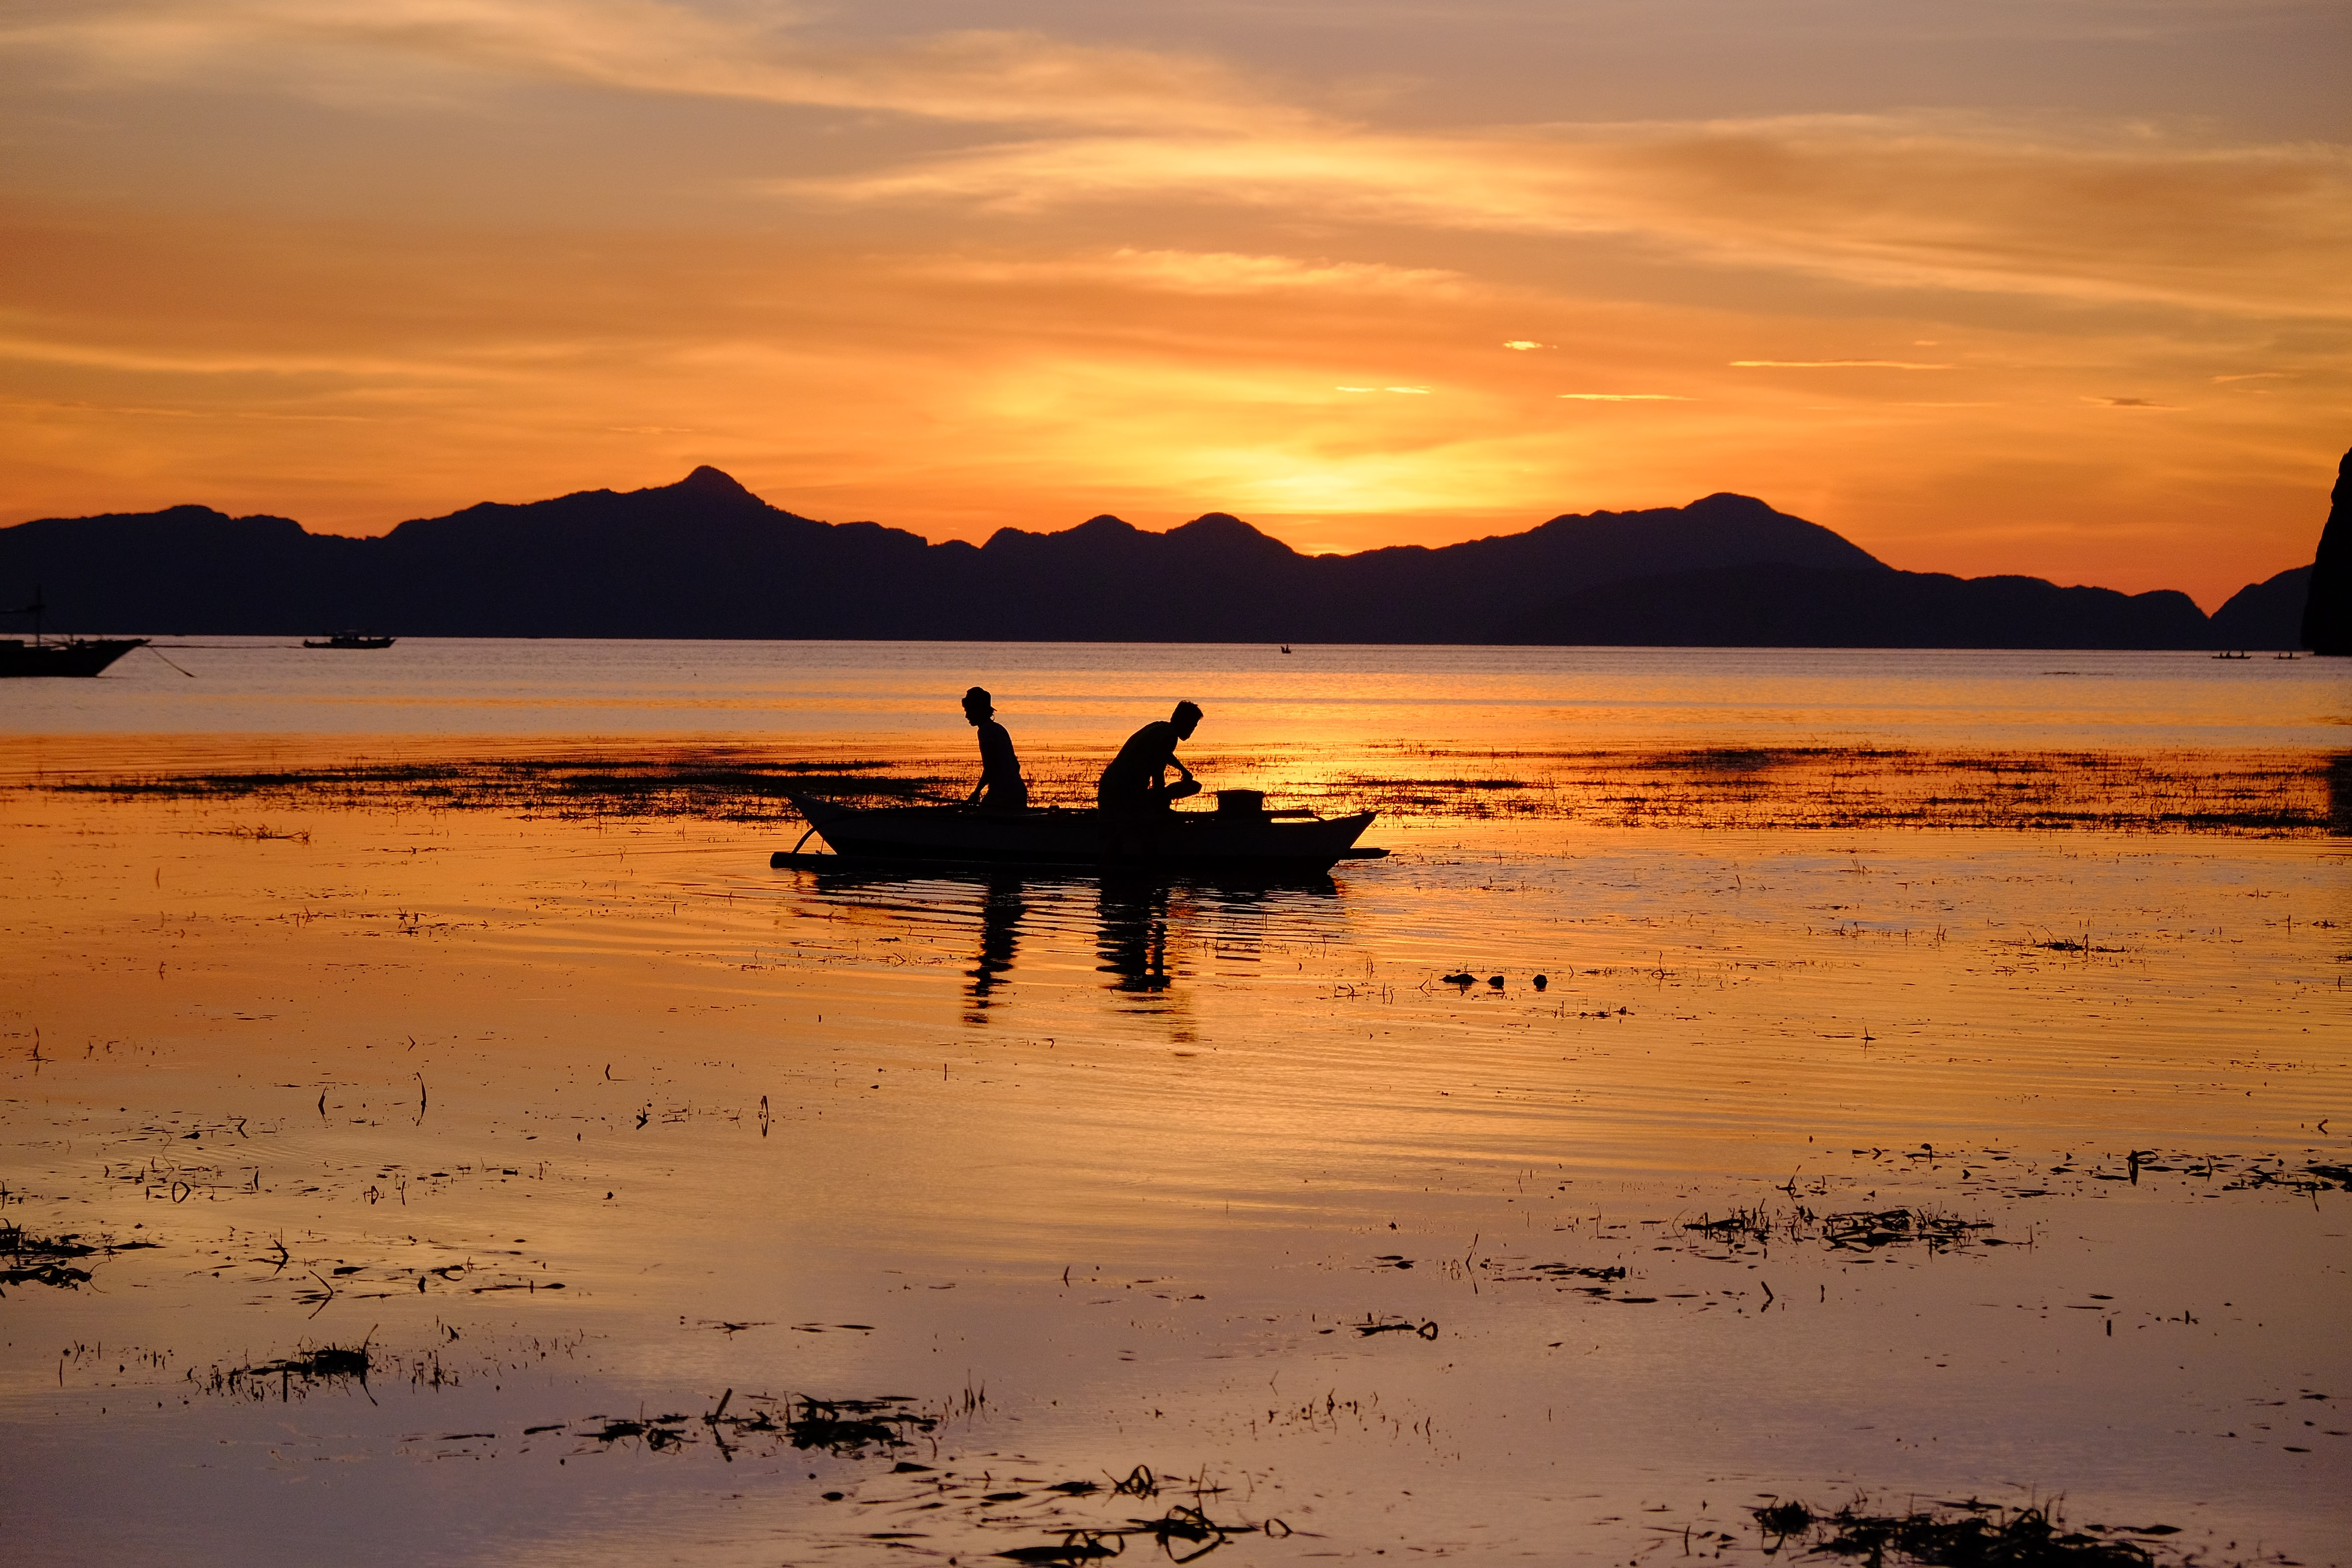 Two fisherman in a boat, their reflection on the water, silhouetted against sun and orange sky